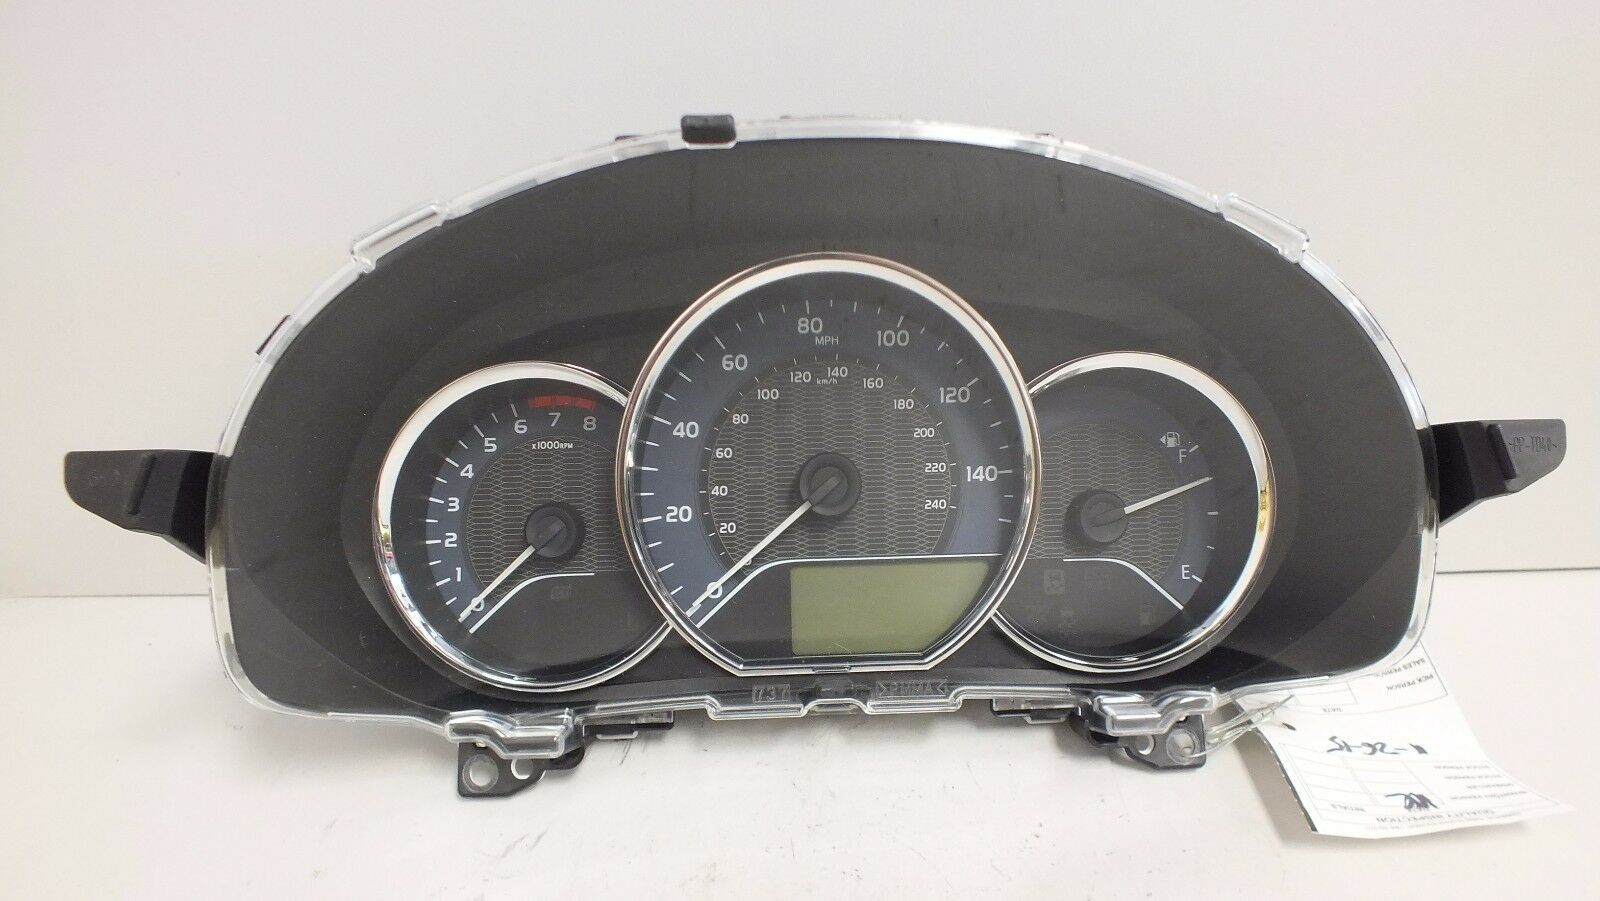 Primary image for 14 15 16 TOYOTA COROLLA LE 1.8L CVT INSTRUMENT CLUSTER 838000ZX00 (12k mi)#1229D